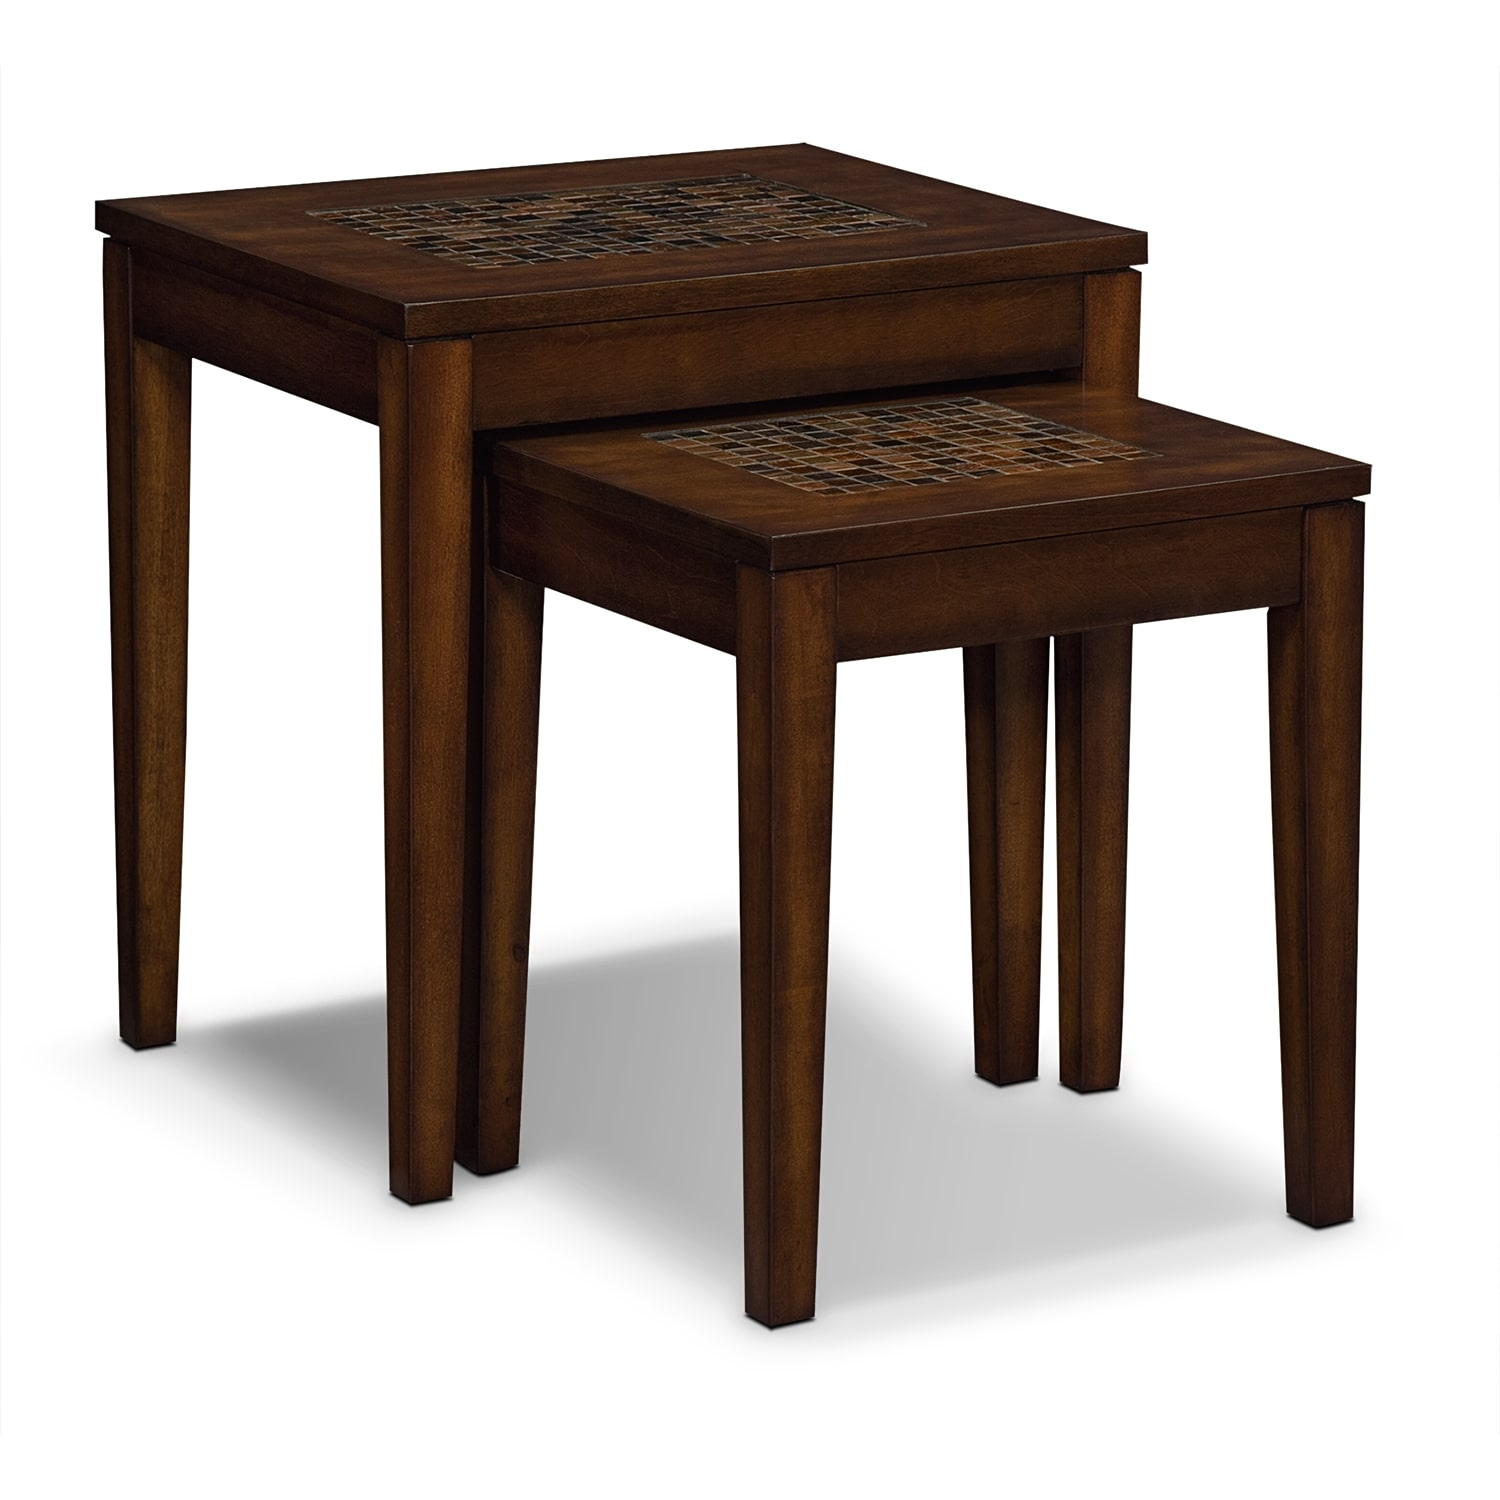 Occasional Tables: Carson Nesting Tables - Brown